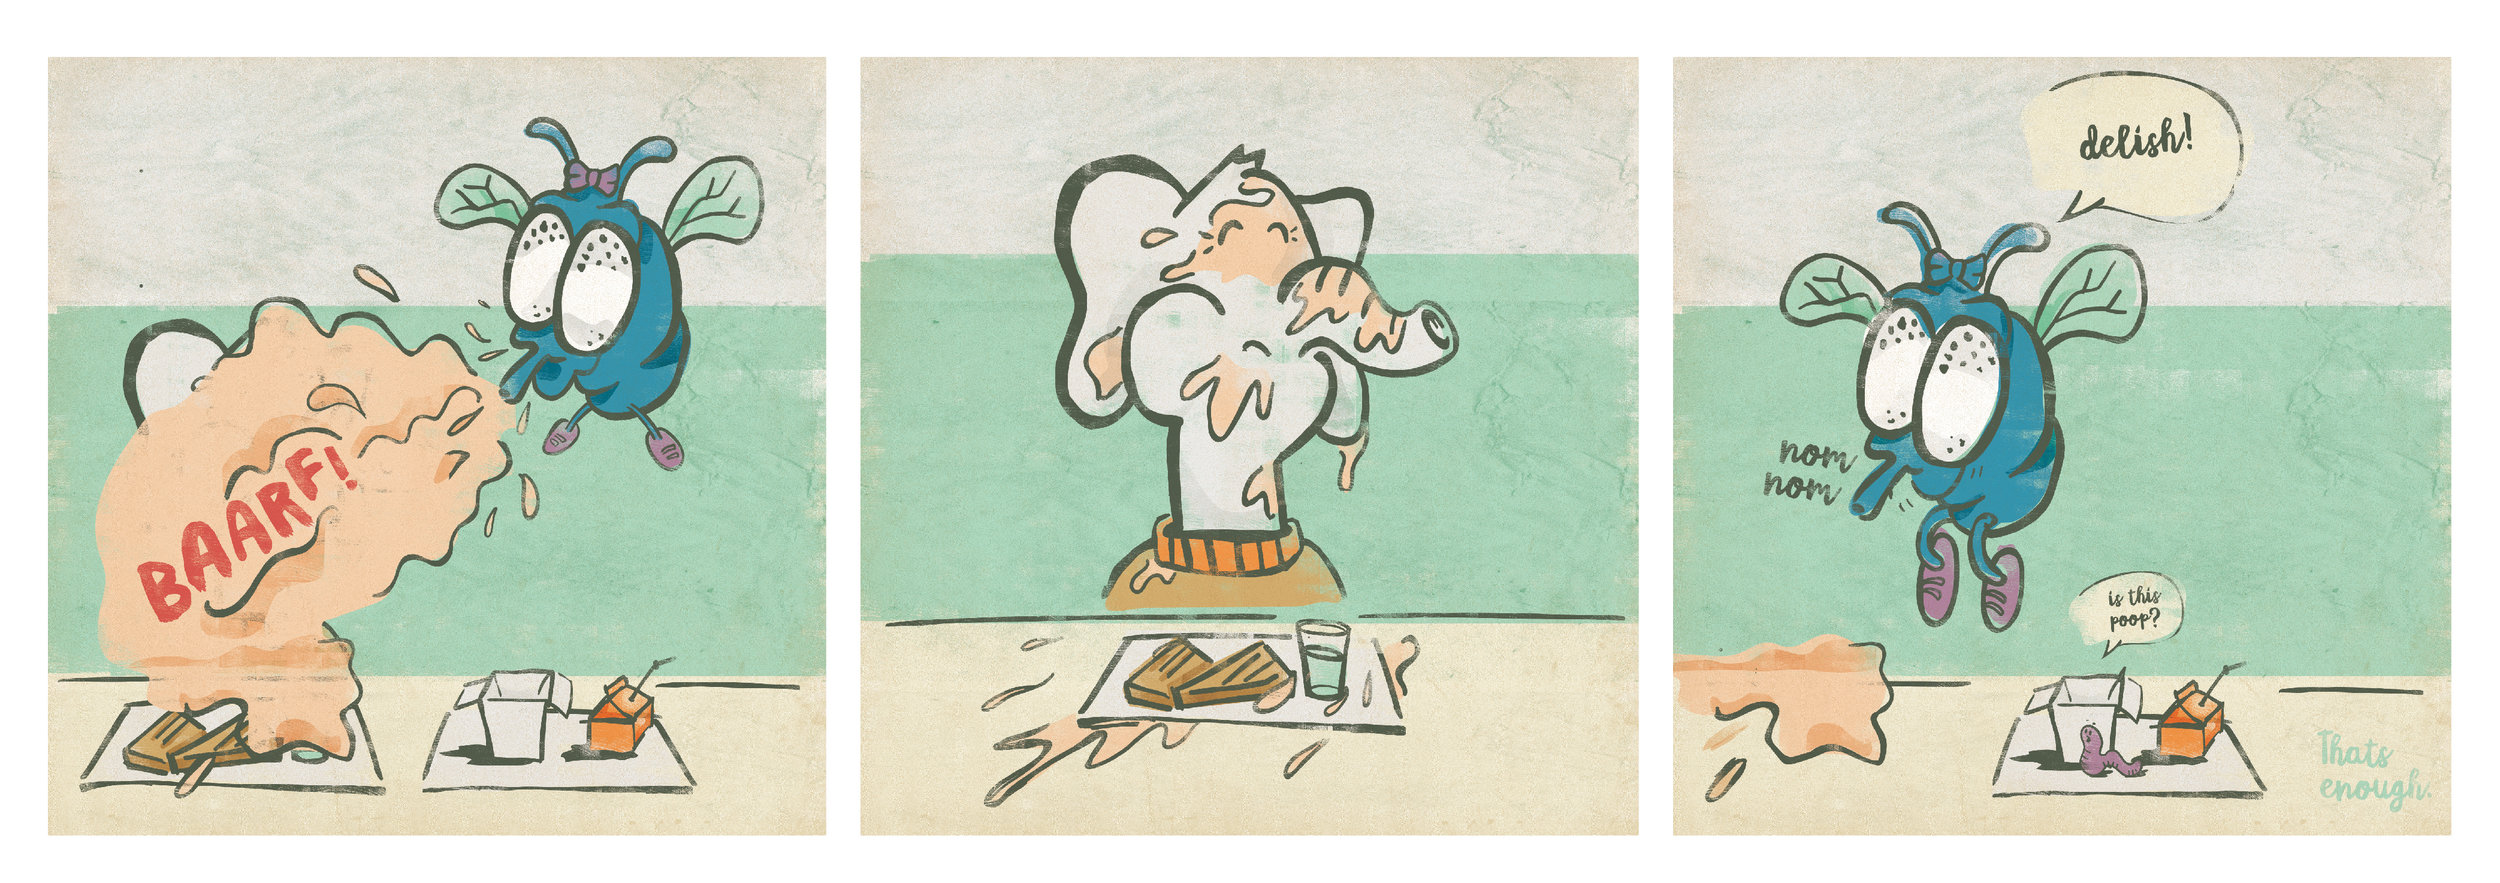 A HeyRoger webcomic about an elephant eating peanut butter paninis with a fly.